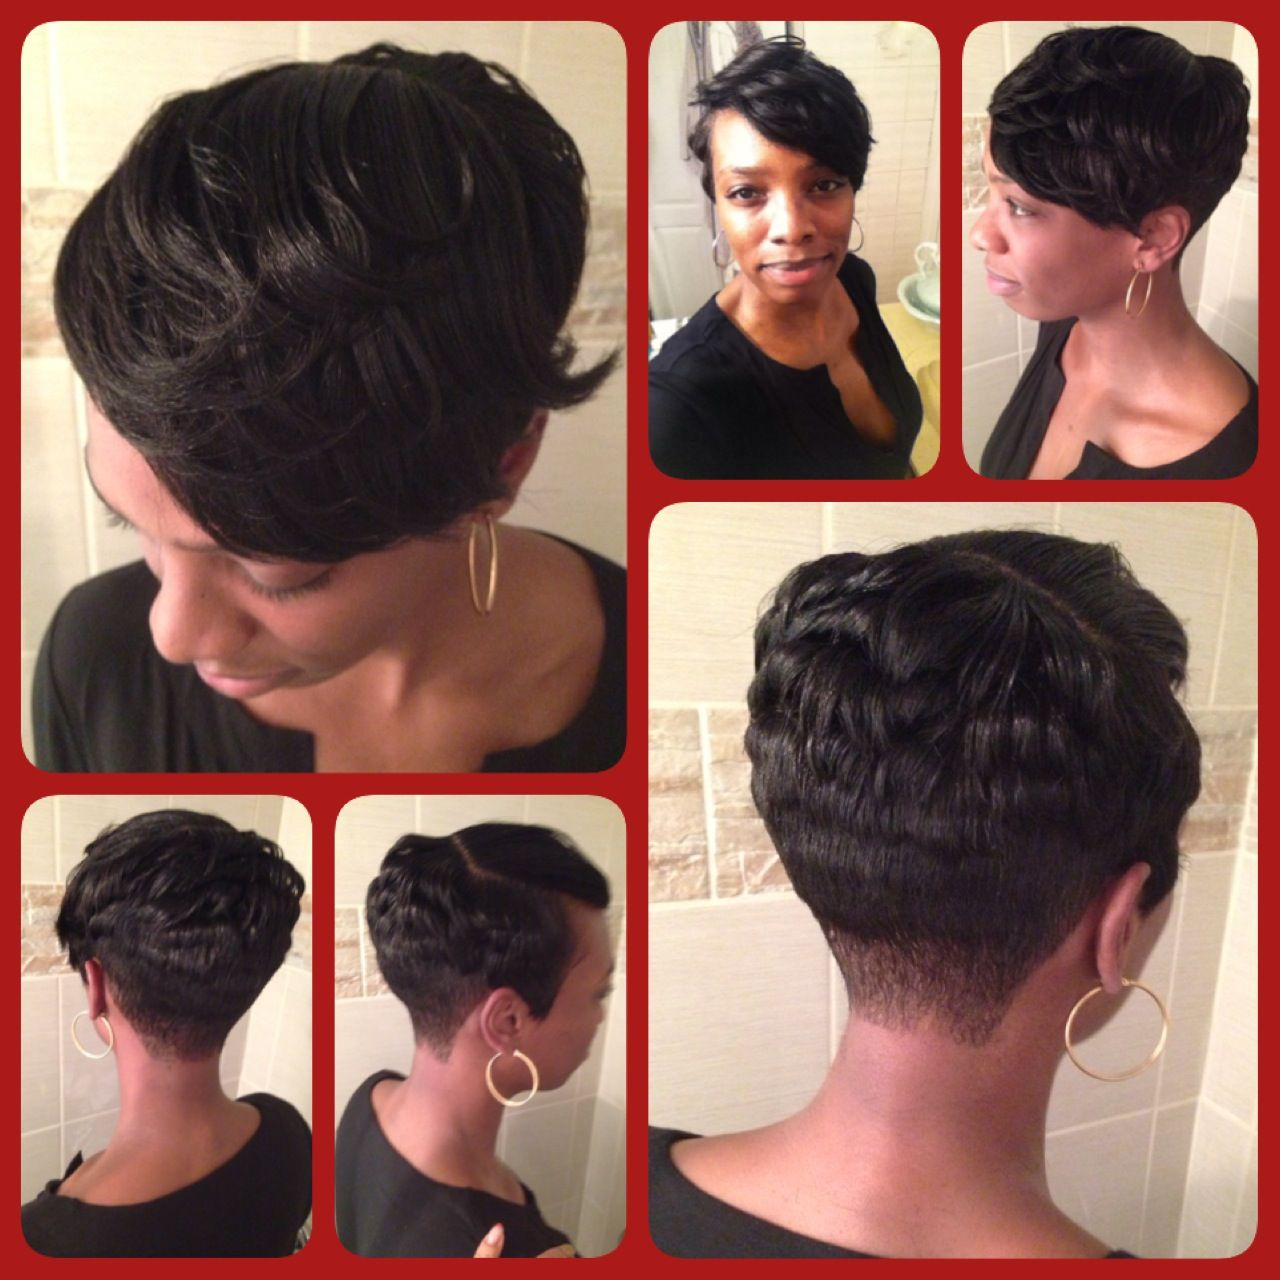 Fantastic 1000 Images About My Meagan Good Short Hairstyles On Pinterest Short Hairstyles For Black Women Fulllsitofus